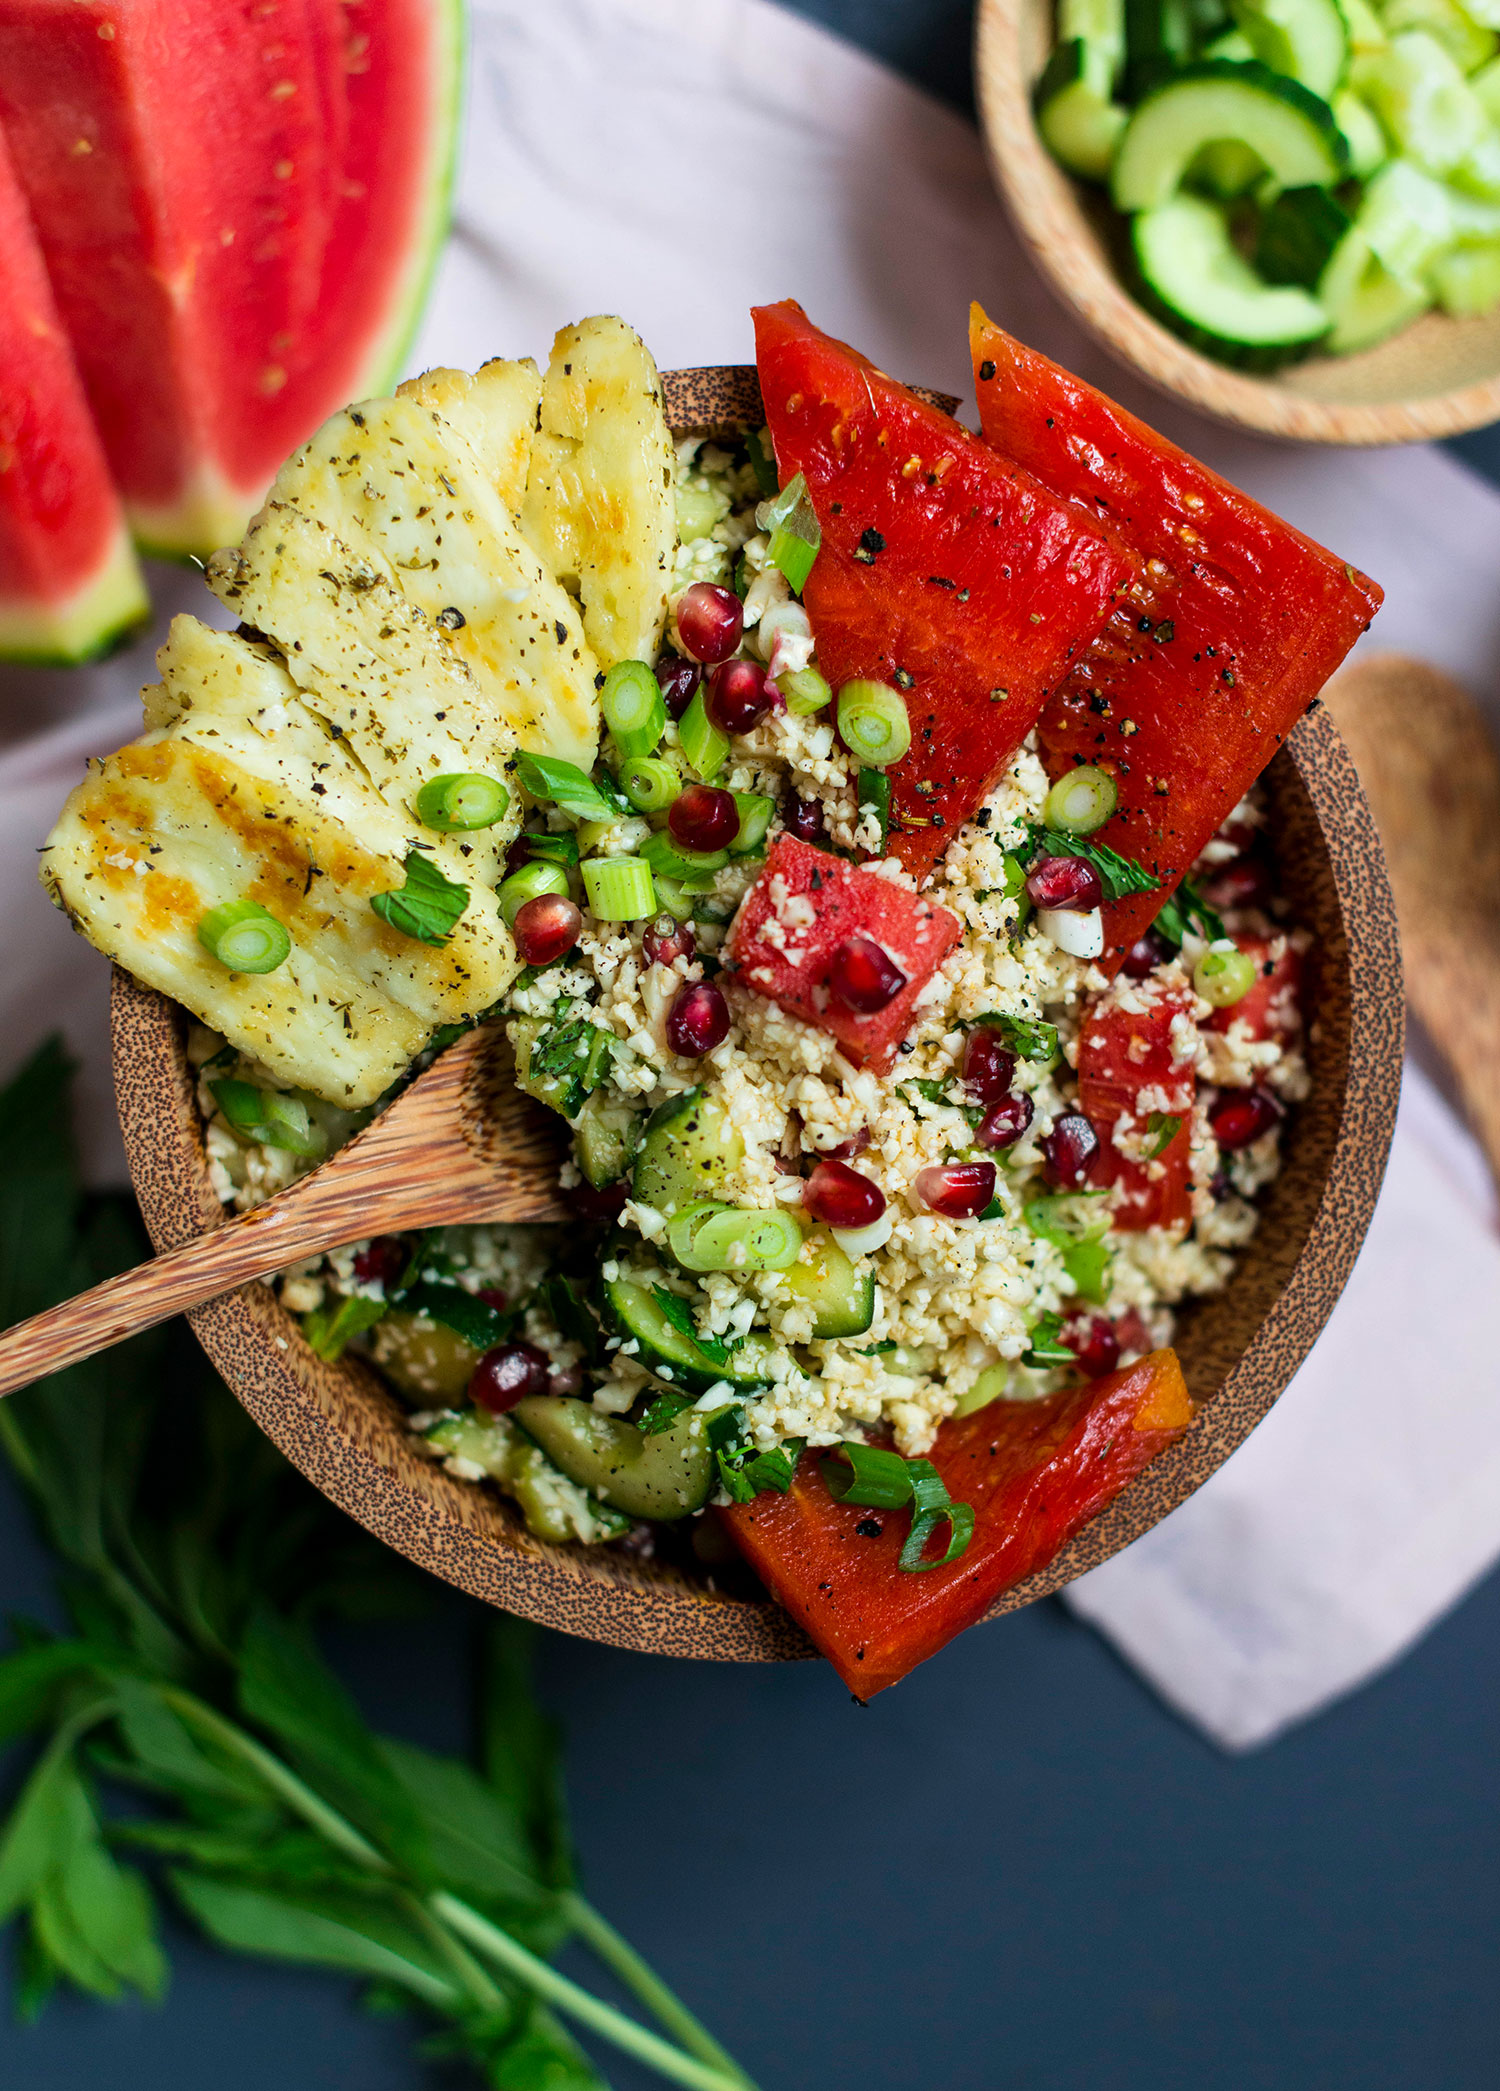 Cauliflower-tabouleh-halloumi-watermelon-1